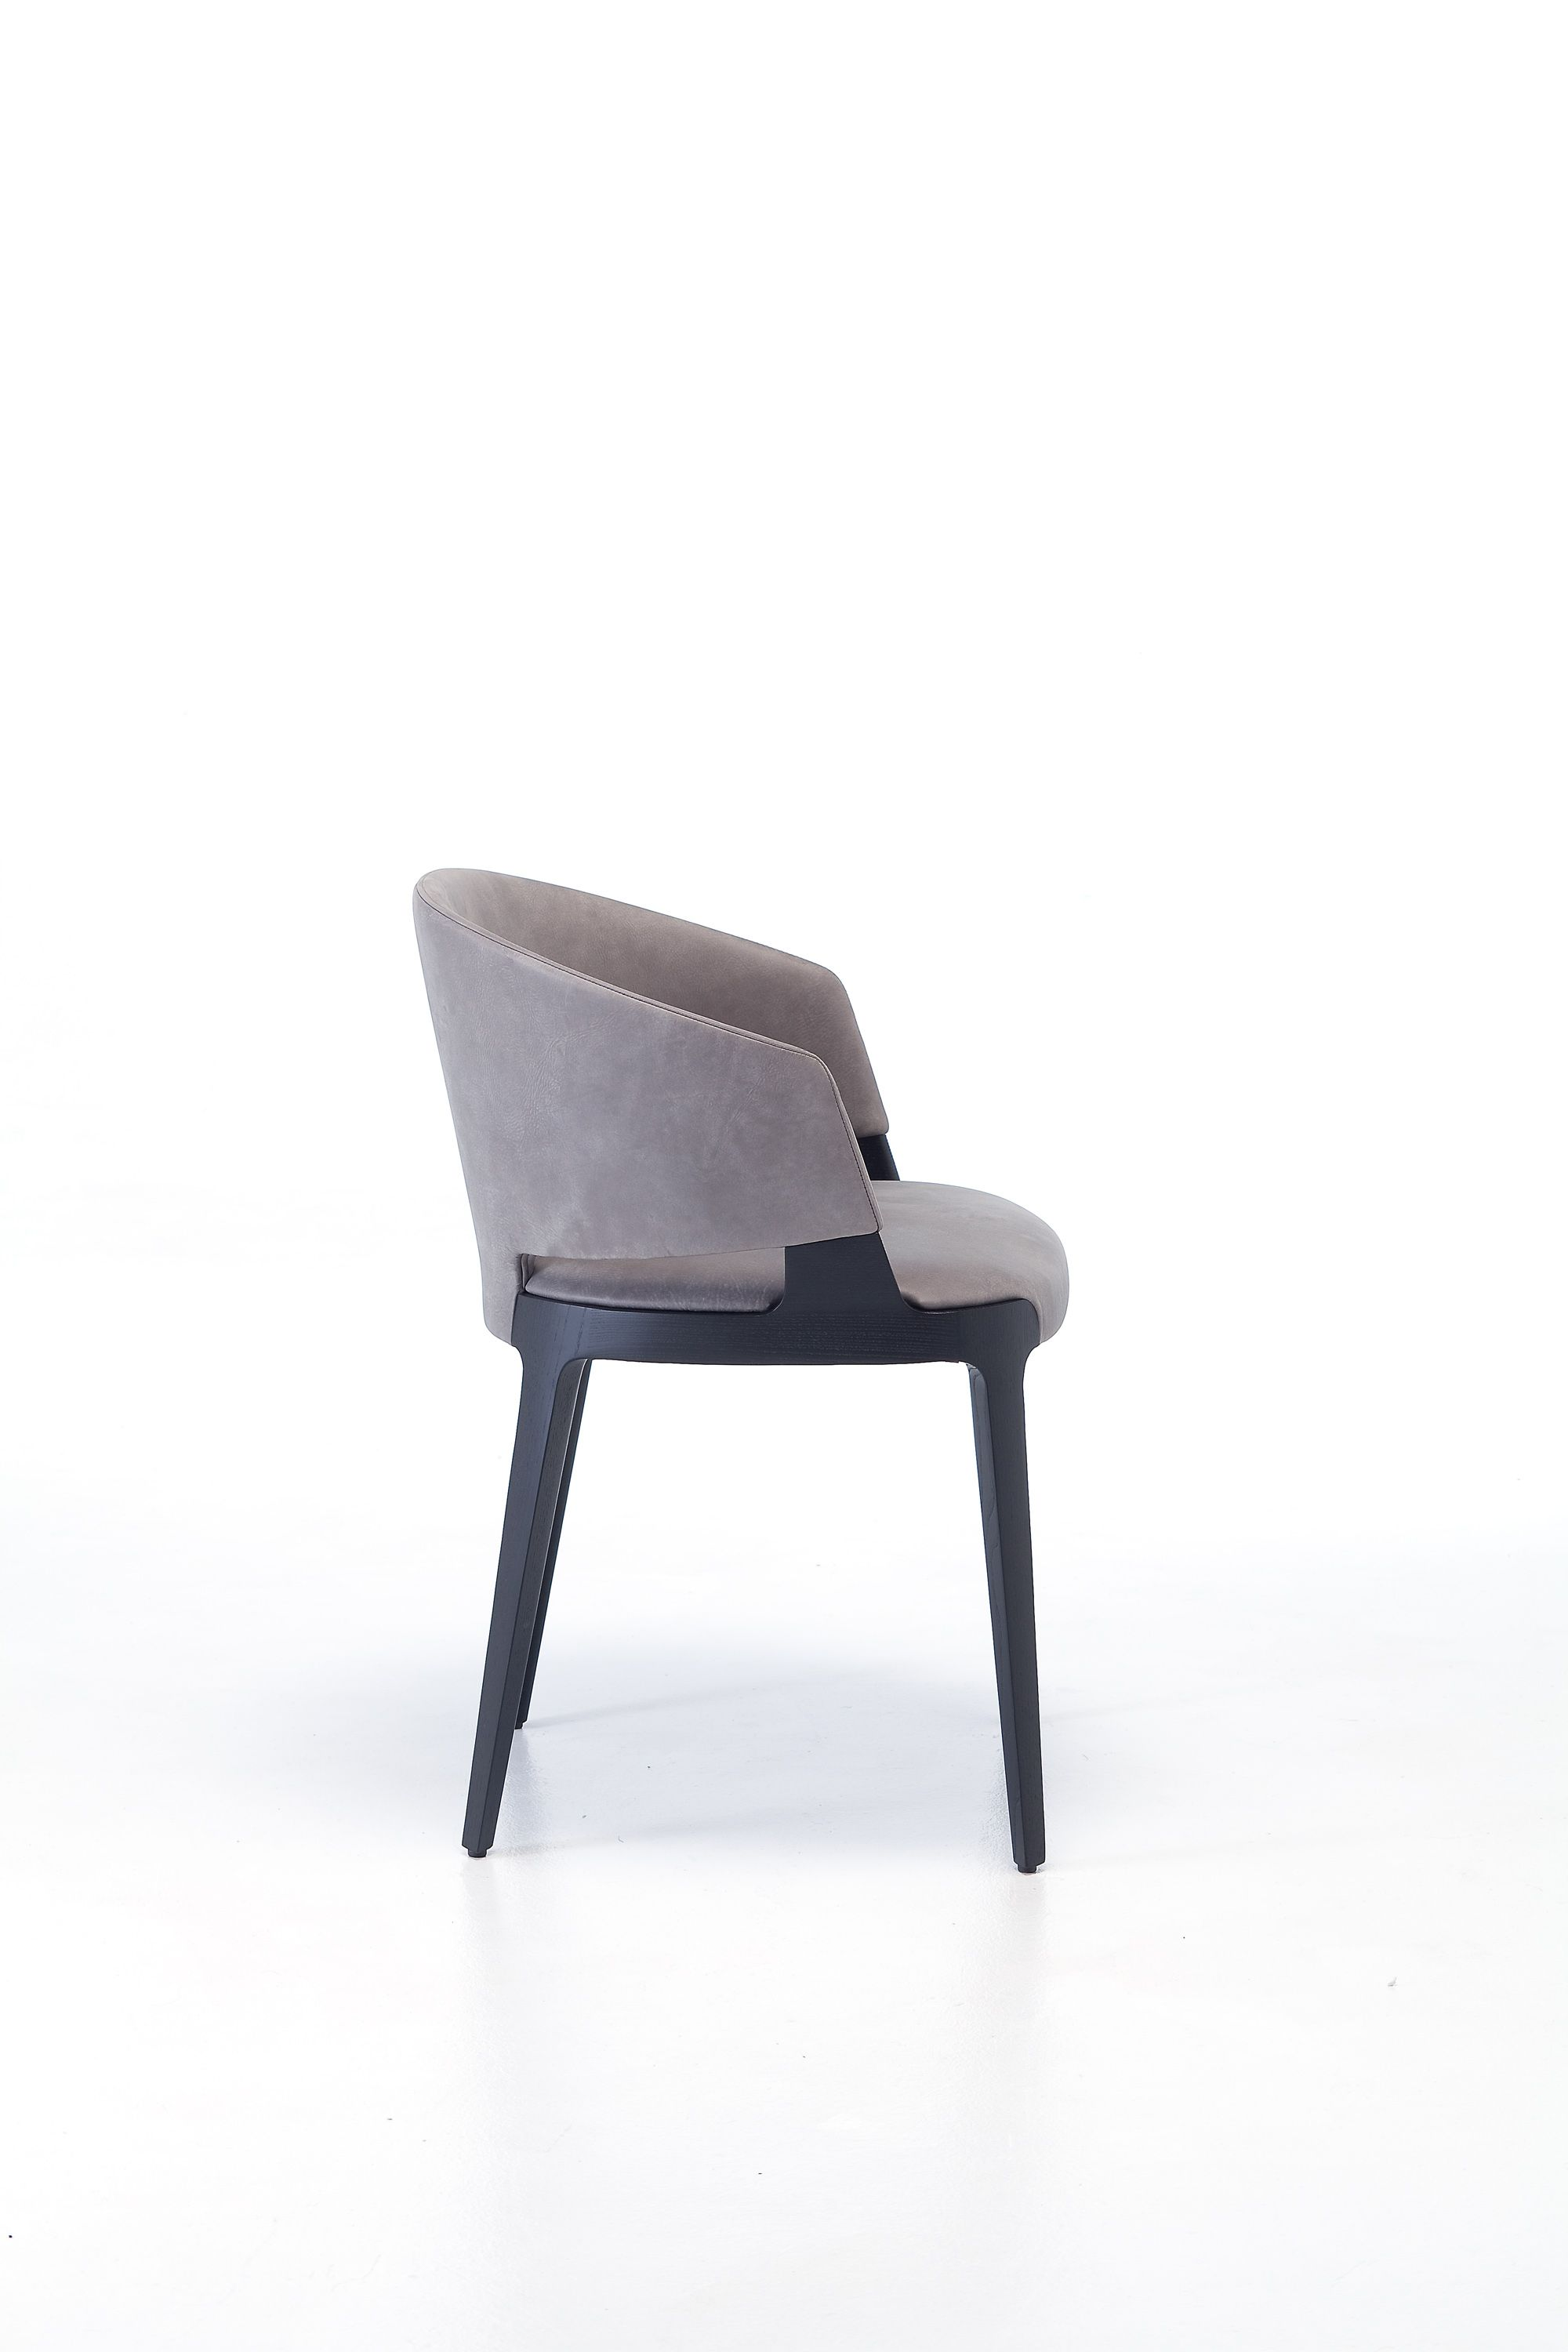 Potocco Velis Tub Chair Furniture Design Chair